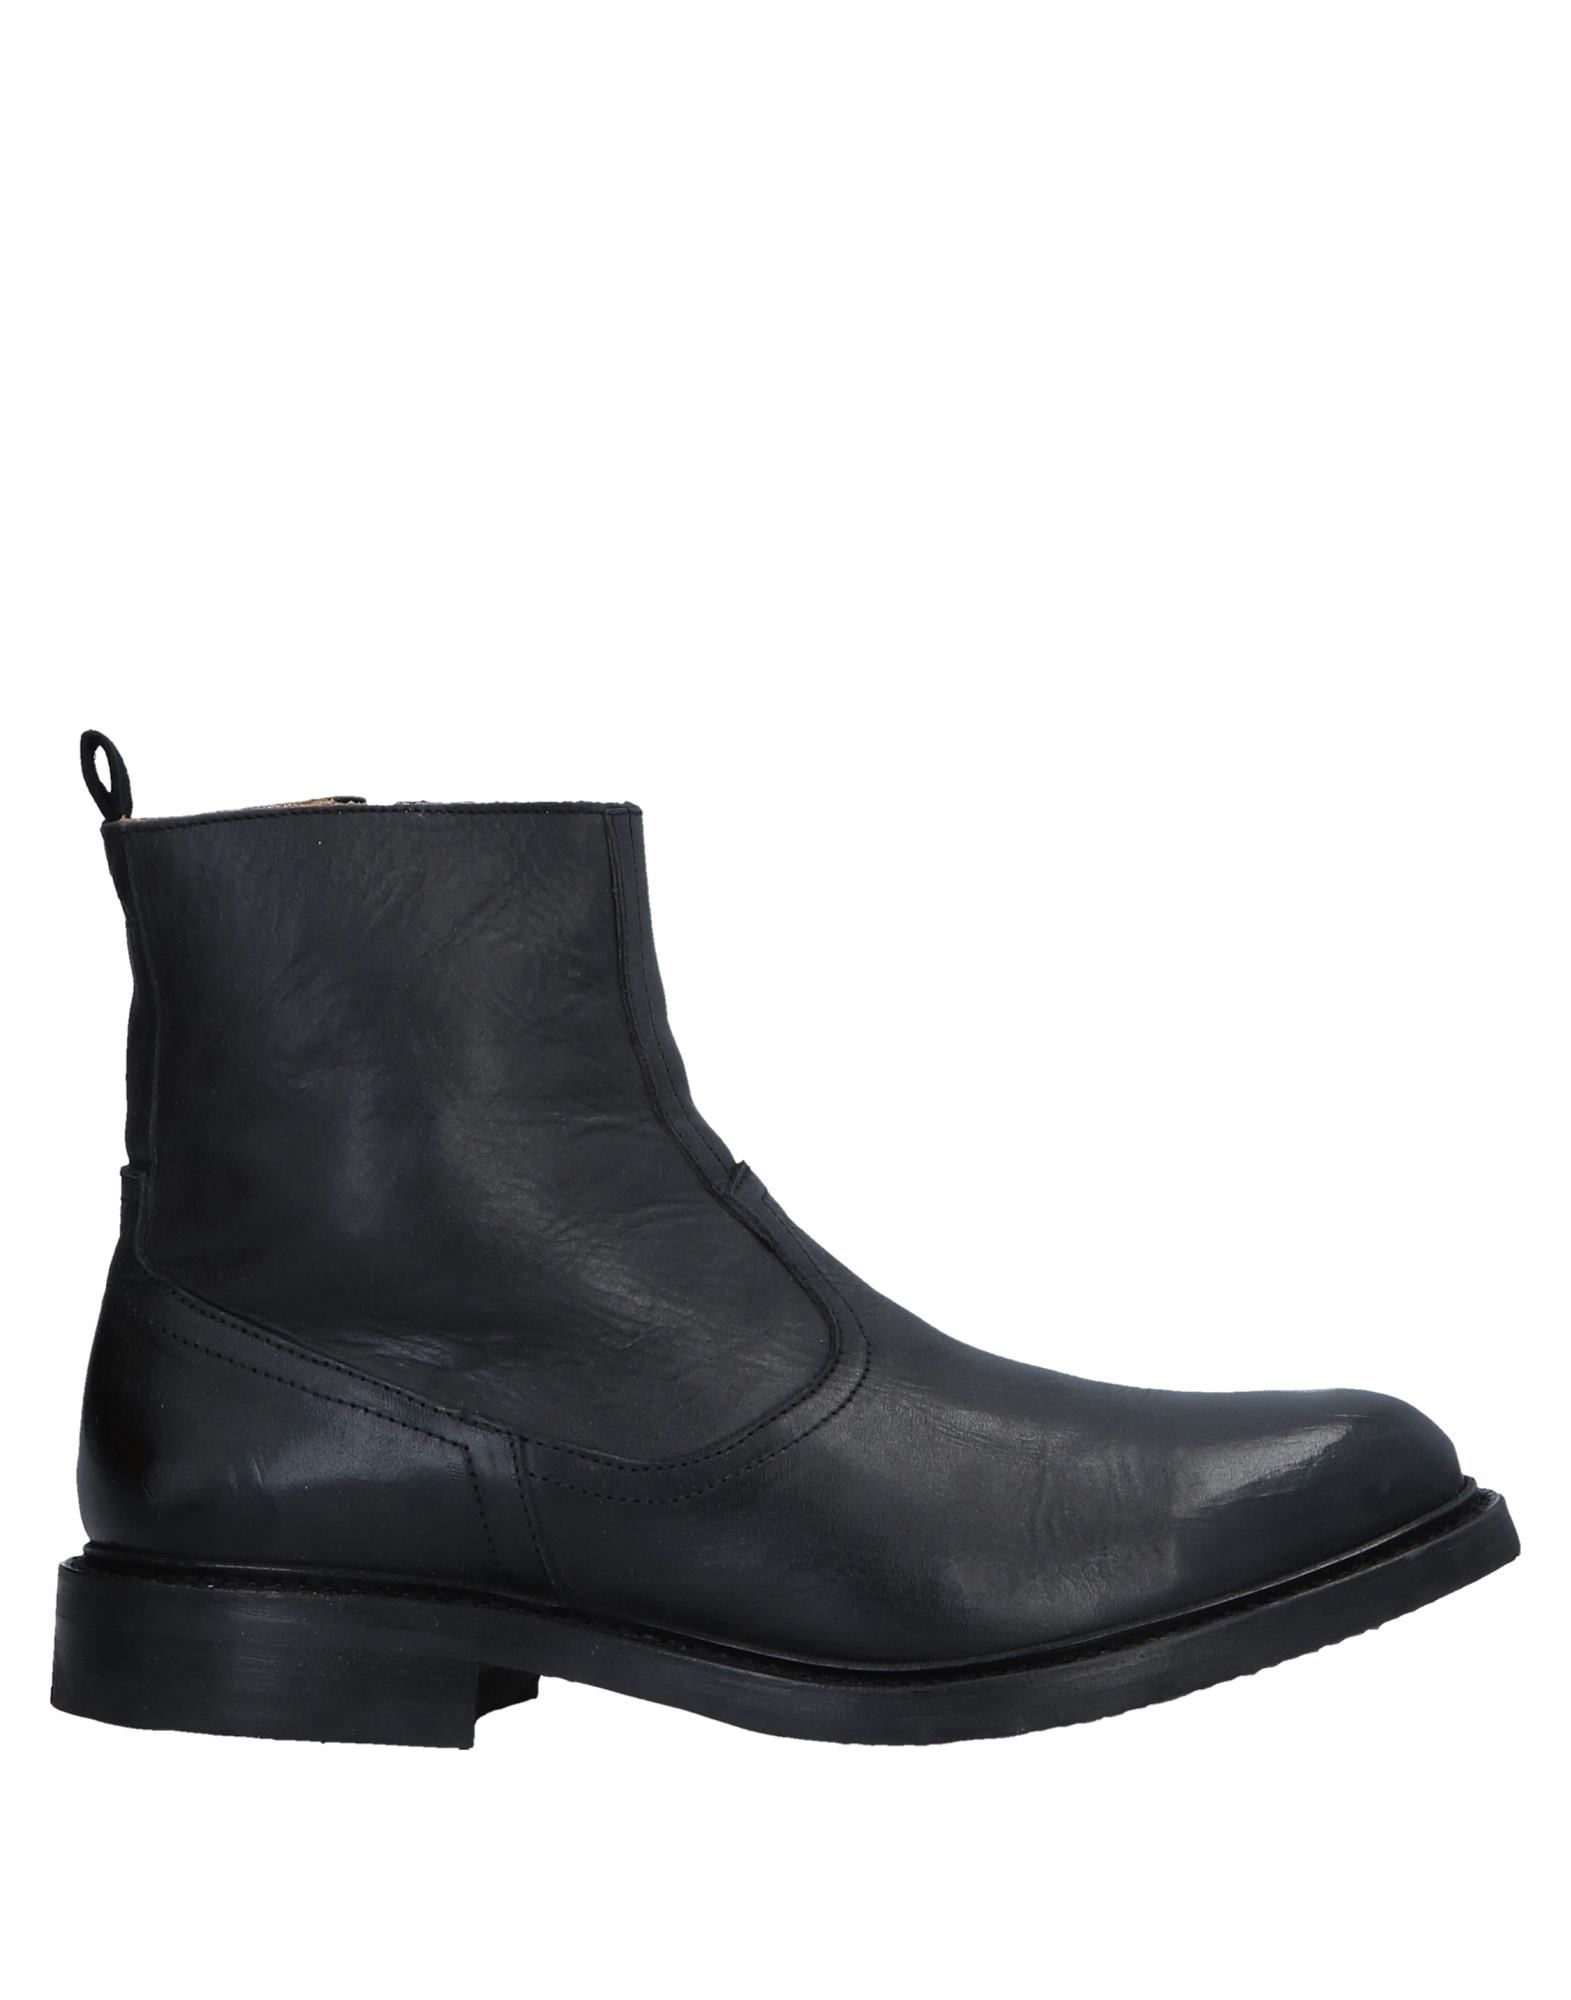 N.D.C. Made Made Made By Hand Stiefelette Herren  11526231XS fc67e9